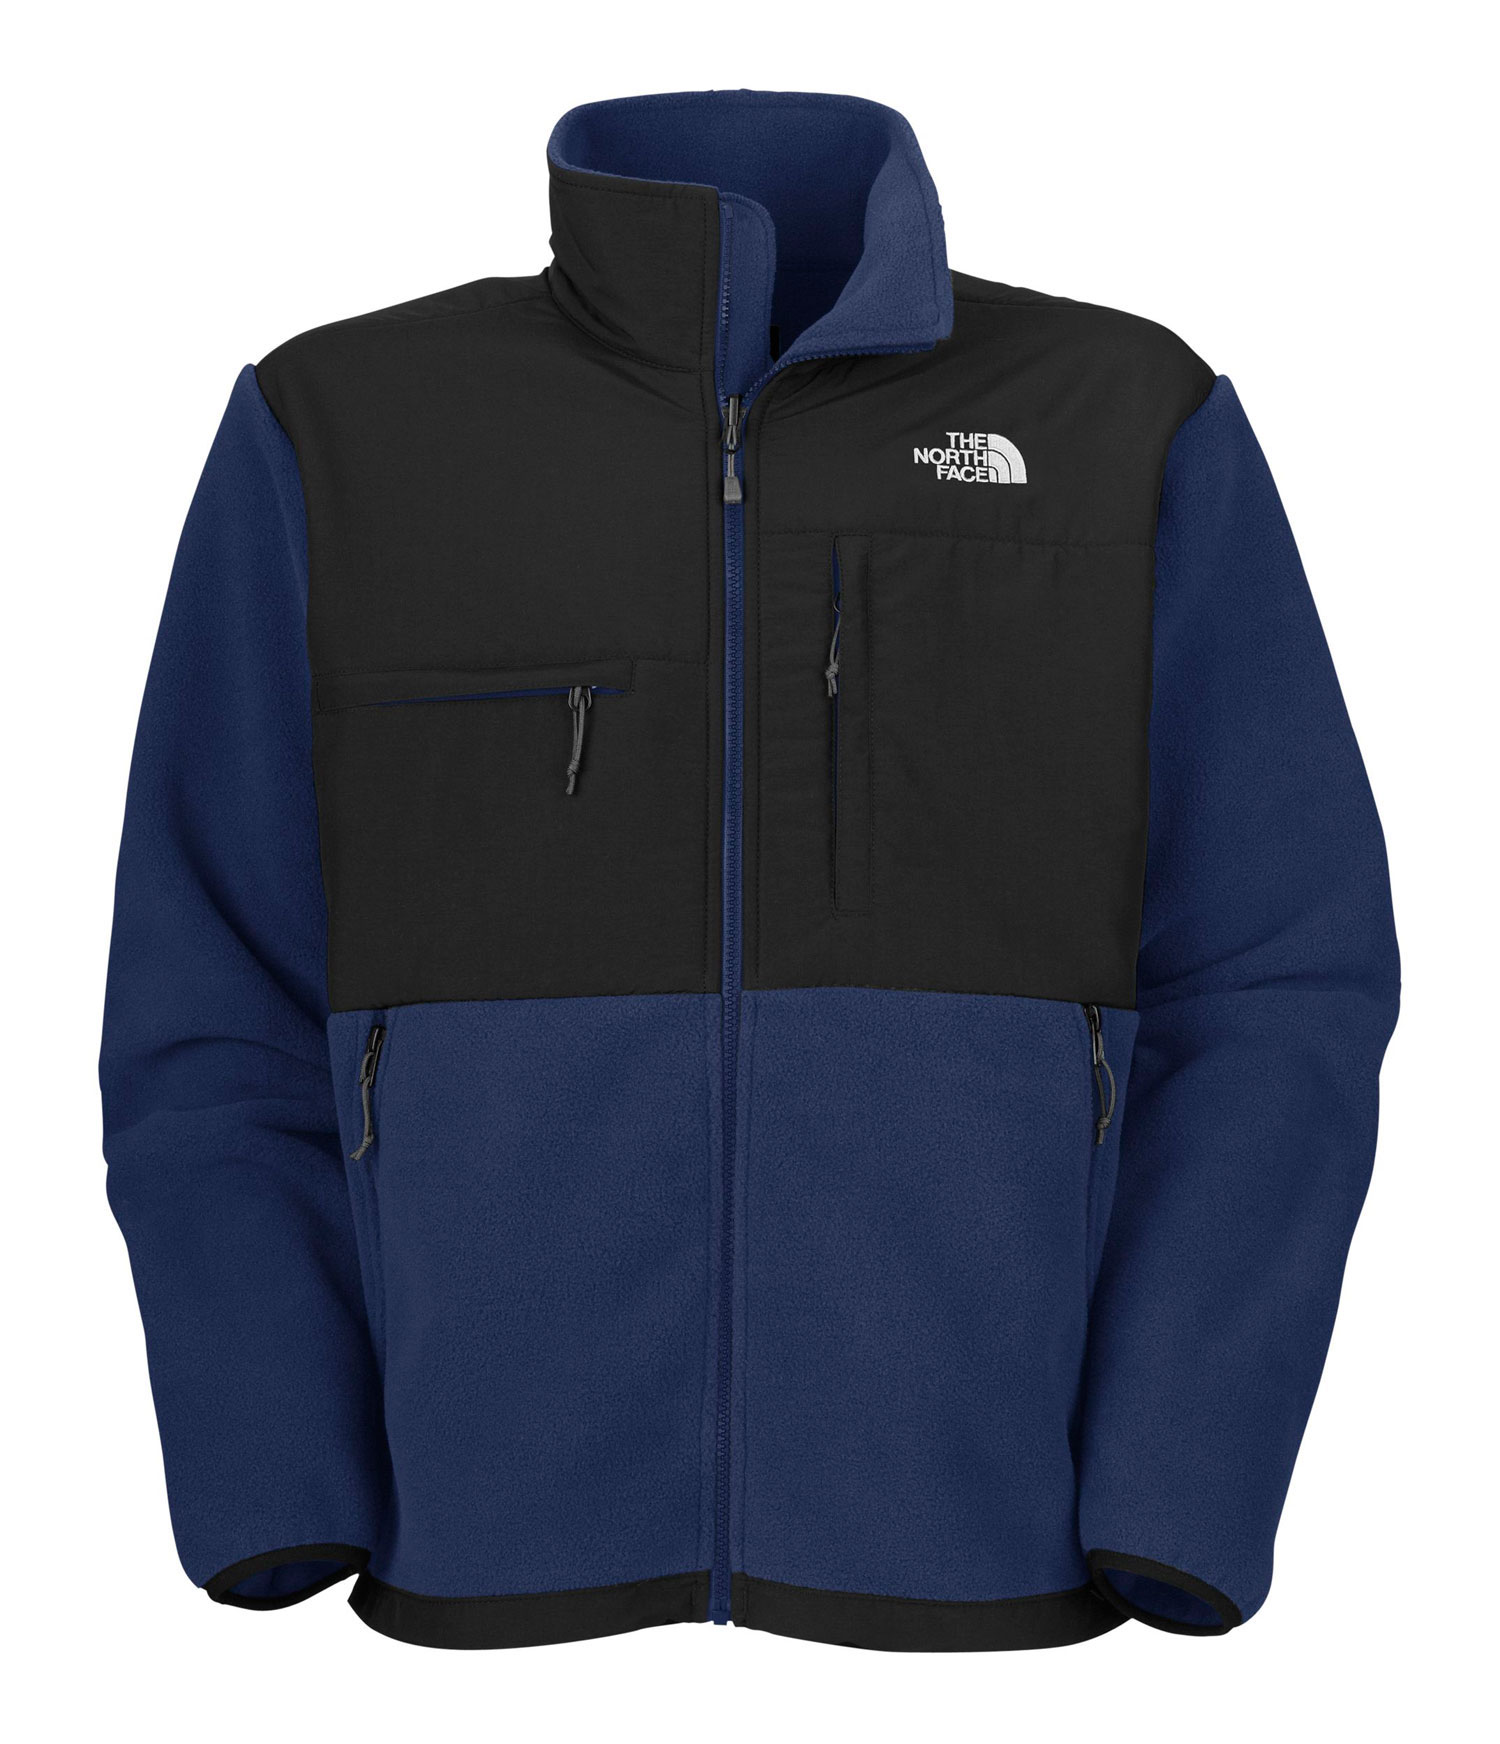 "A 100% windproof fleece gives this already comfortable and durable jacket ultimate protection from winter weather. Key Features of The North Face Denali Fleece: Avg Weight: 842 g (29.7 oz) Center Back: 28"" Fabric: body: recycled Polartec 300 Series fleece with DWR (bluesign approved fabric) abrasion: laundered two-ply nylon (bluesign approved fabric) Standard fit Zip-in compatible Abrasion-reinforced shoulders and elbows Napoleon chest pocket Horizontal chest pocket Two hand pockets Elastic- bound cuffs Pit-zip vents Hem cinch-cord Fixed hood *3XL TNF Black and R Charcoal Grey Heather only - $123.95"